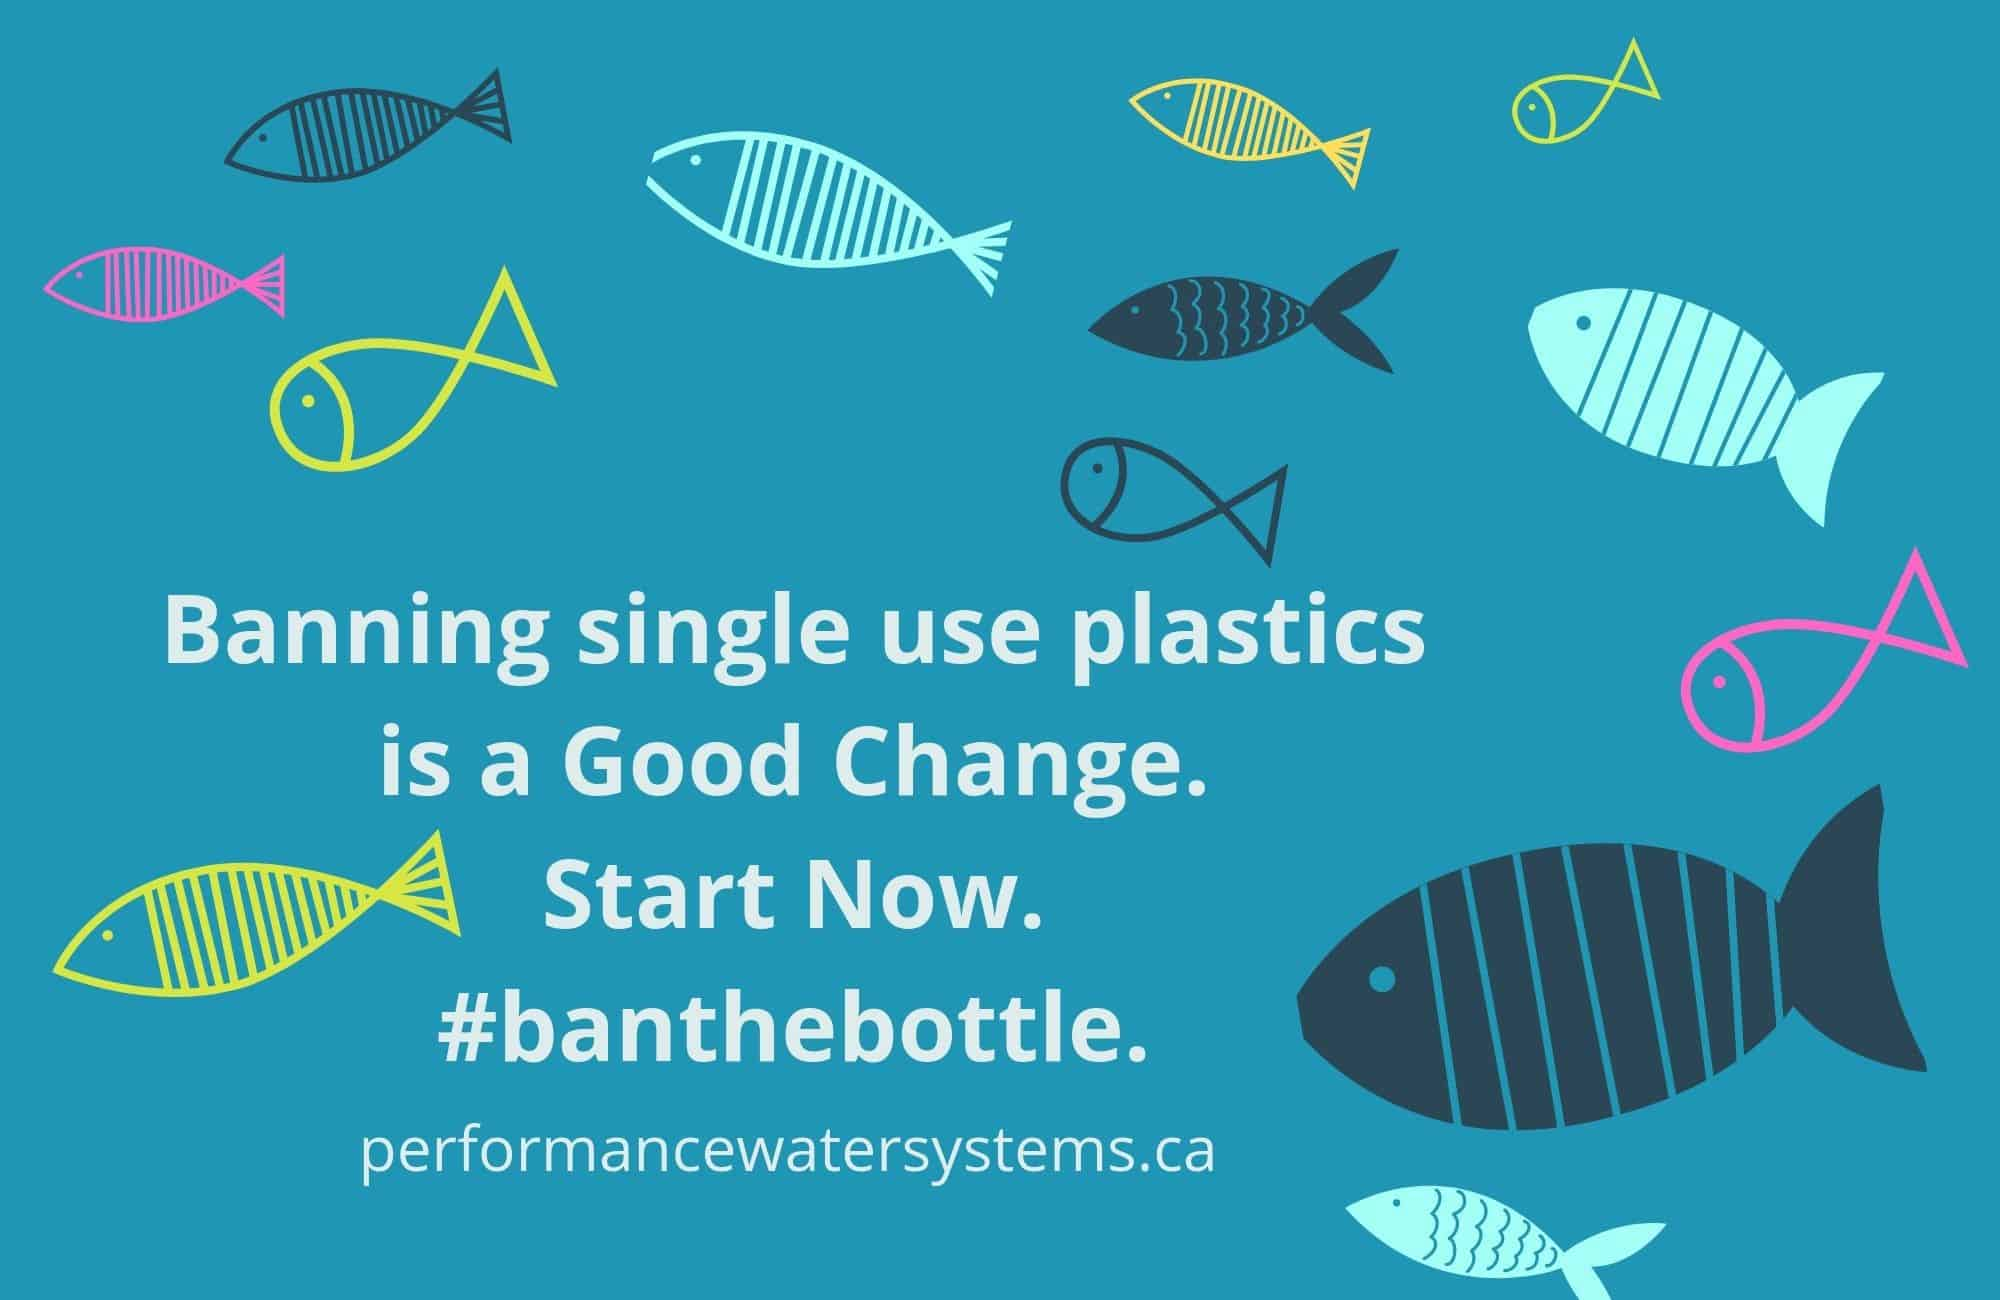 Ban on Single Use Plastics in Canada to take effect by 2021. Start Now. Ban the Bottle.